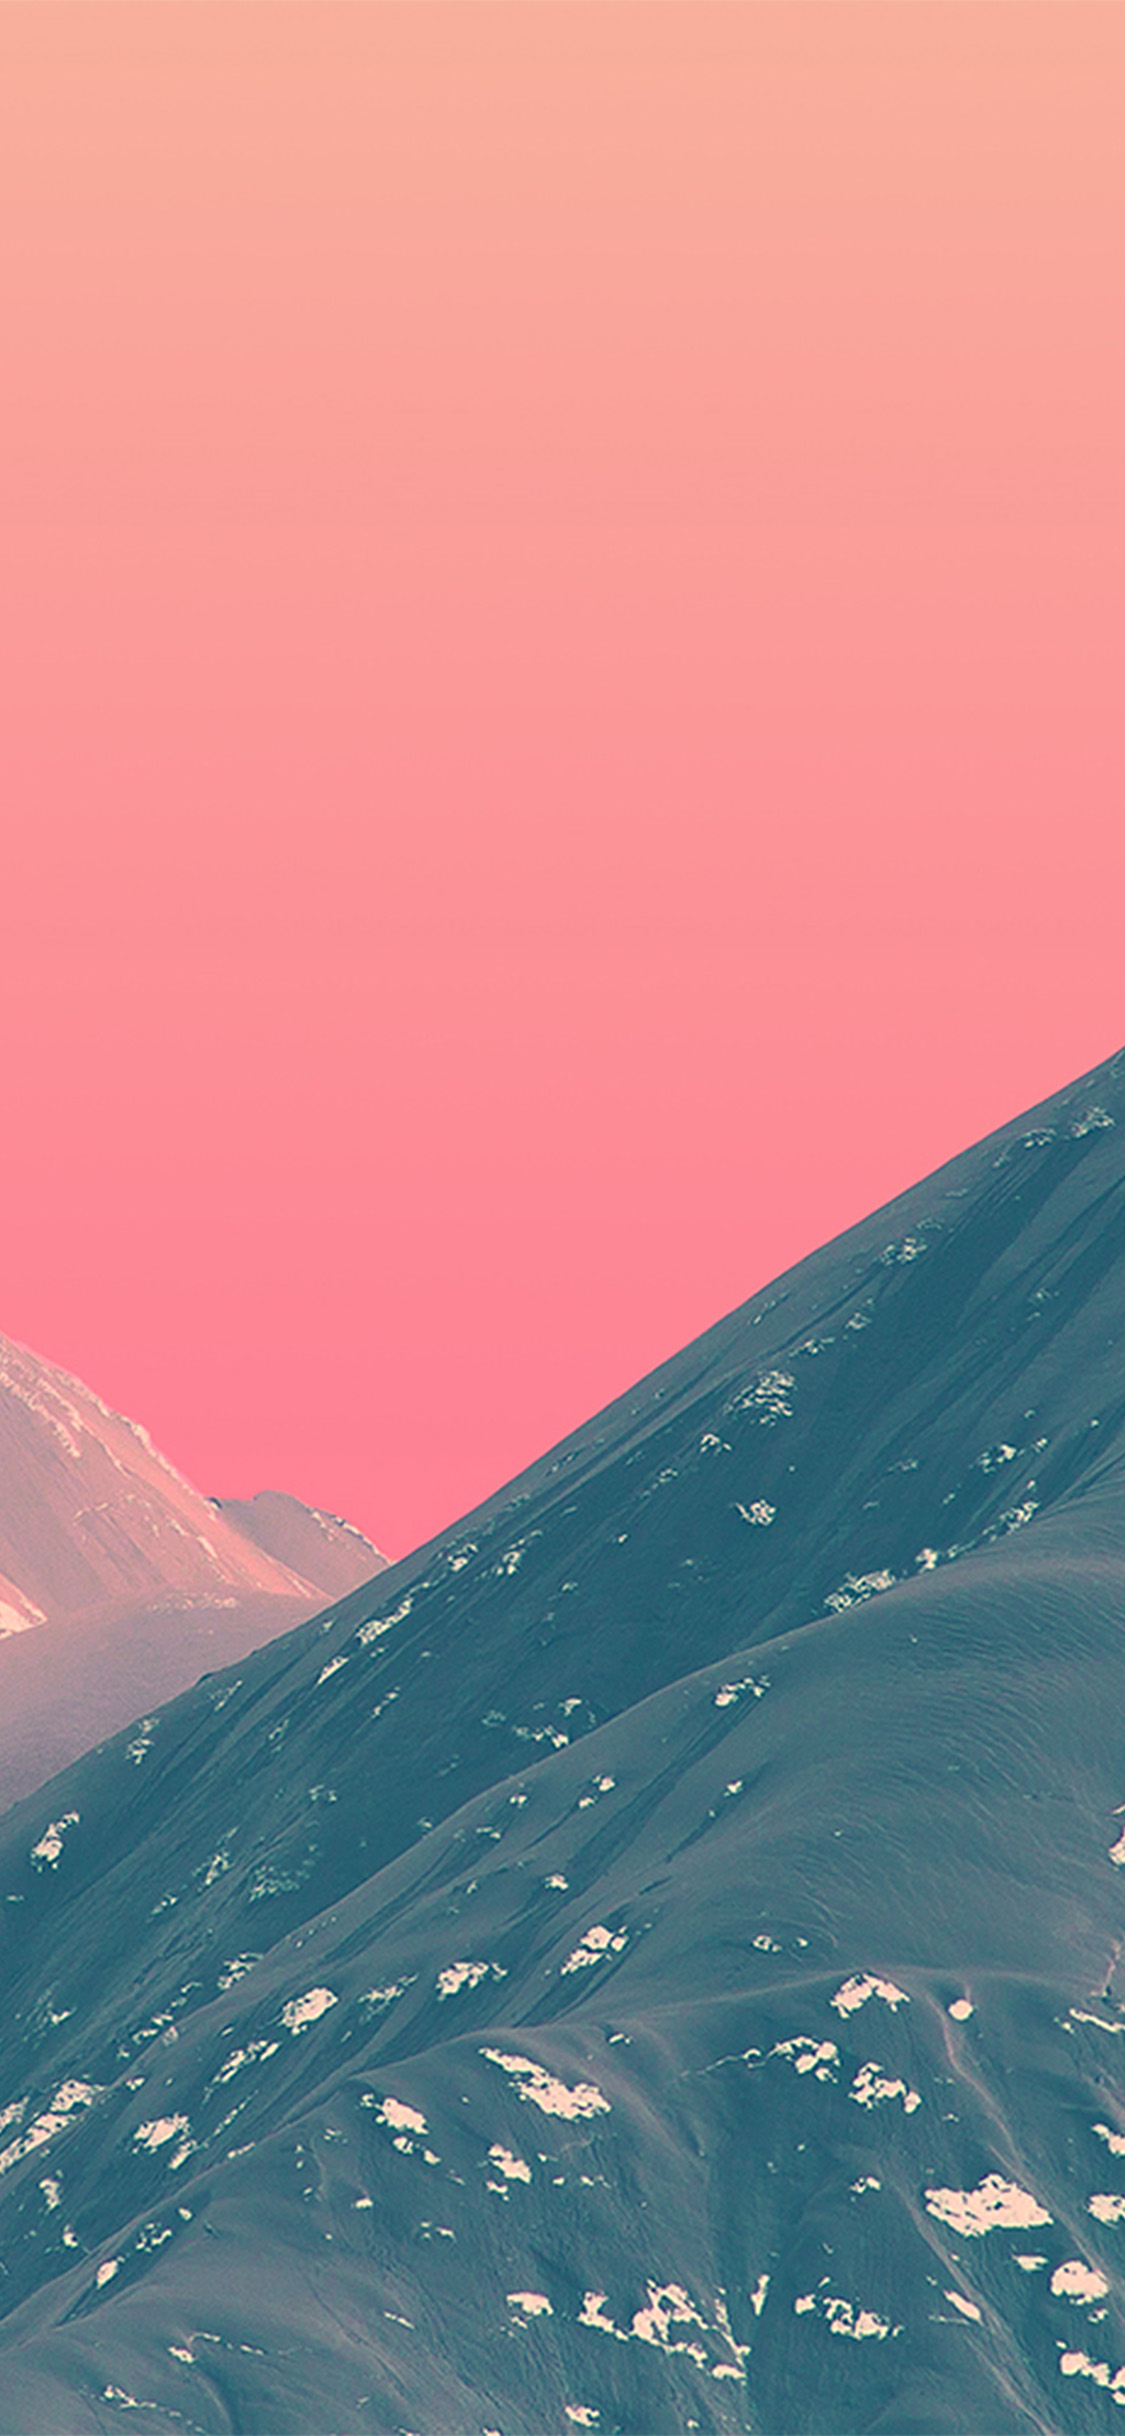 iPhonexpapers.com-Apple-iPhone-wallpaper-bf71-mountain-pink-nature-art